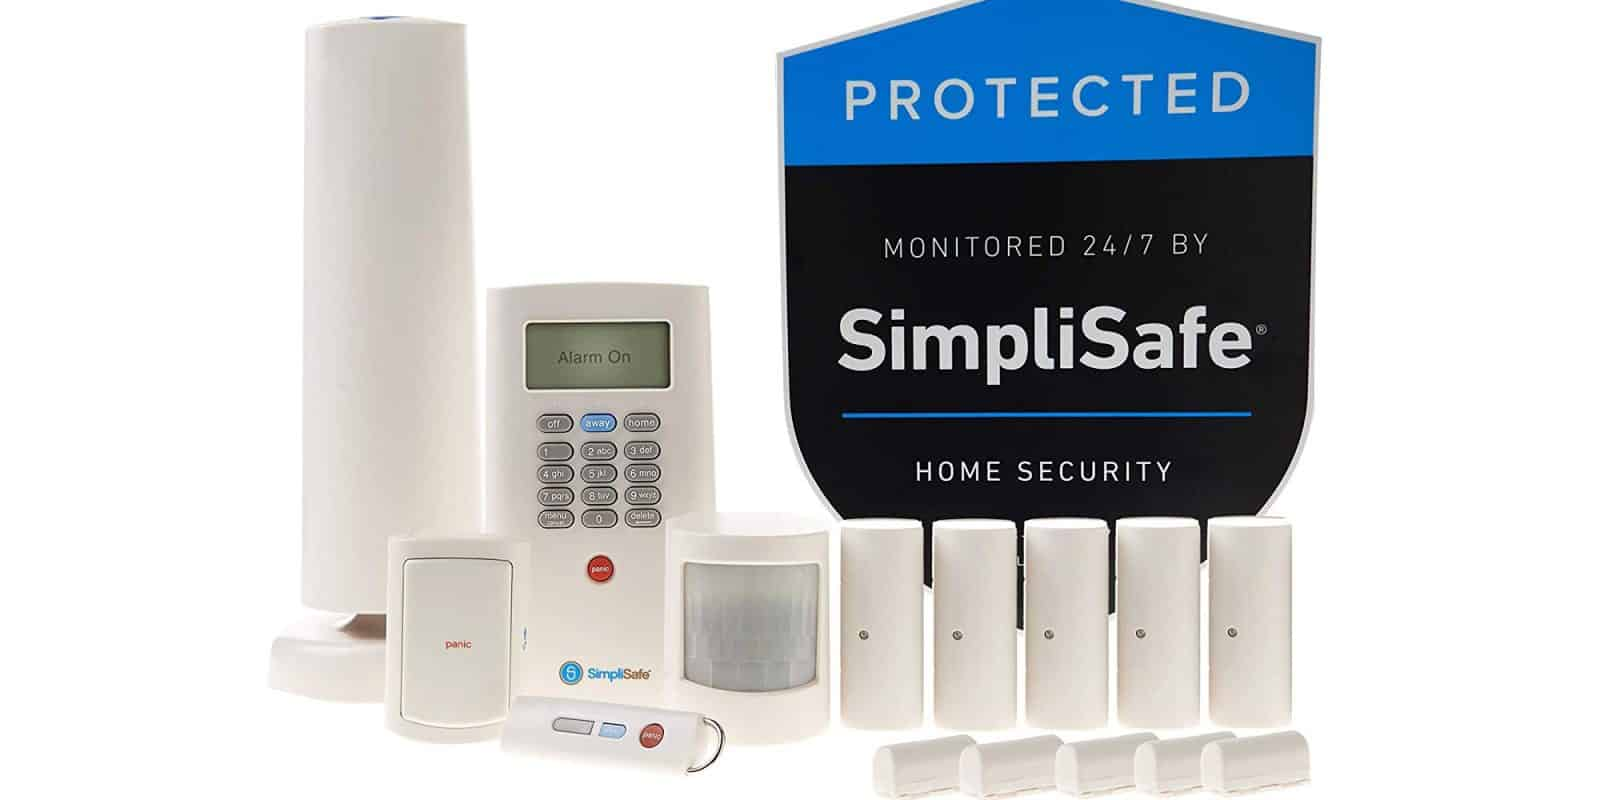 Why We Went with Simplisafe